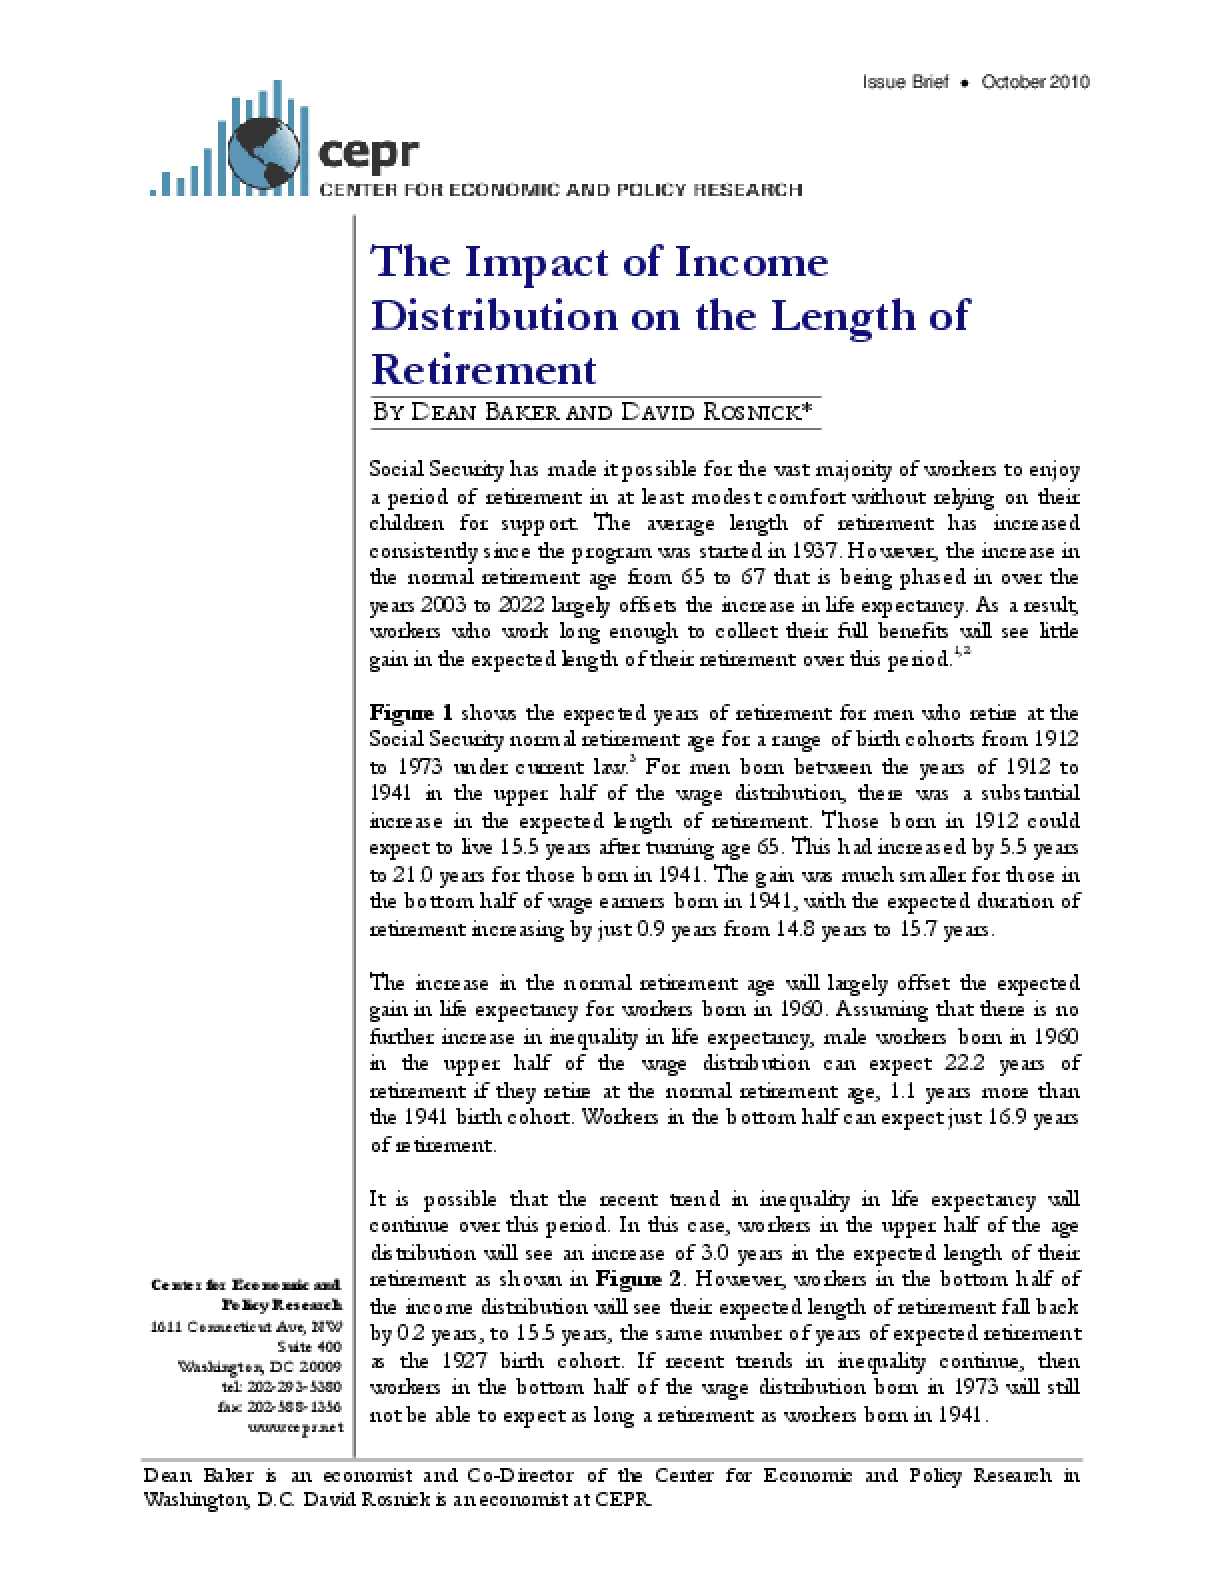 The Impact of Income Distribution on the Length of Retirement